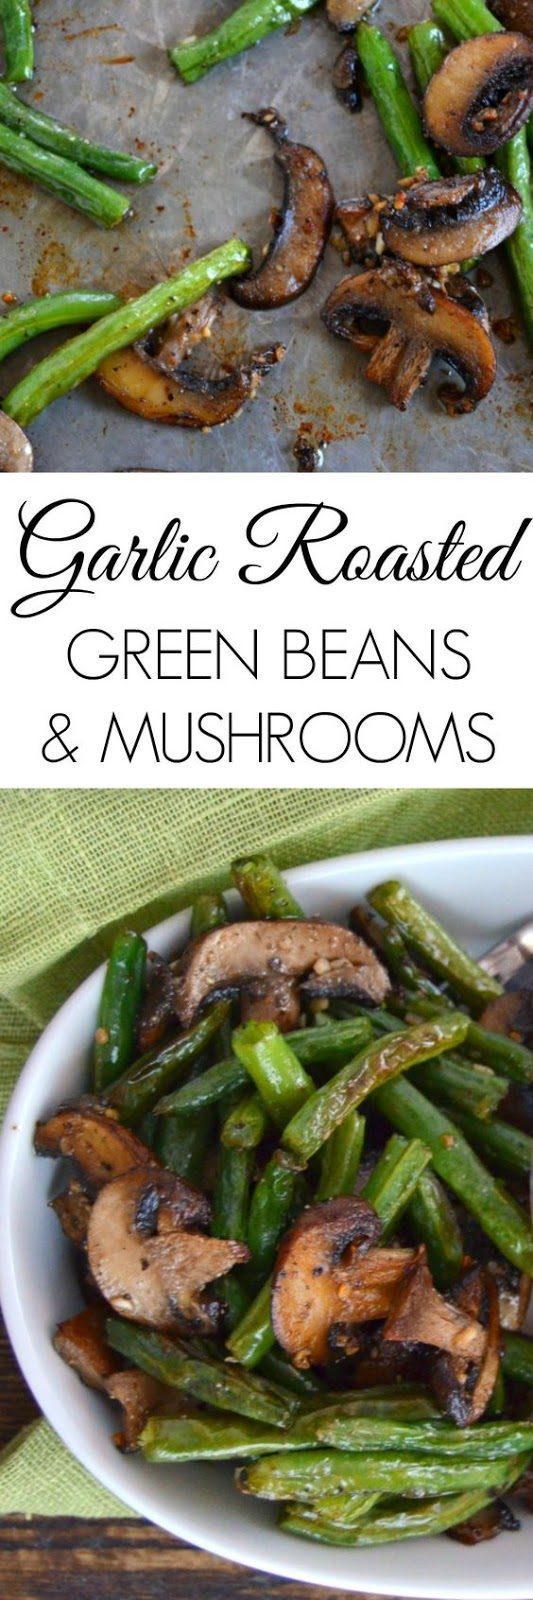 GARLIC ROASTED GREEN BEANS AND MUSHROOMS #garlic #roasted #greenbeans #mushroom #vegetarian #vegetarianrecipes #veggies #vegan #veganrecipes